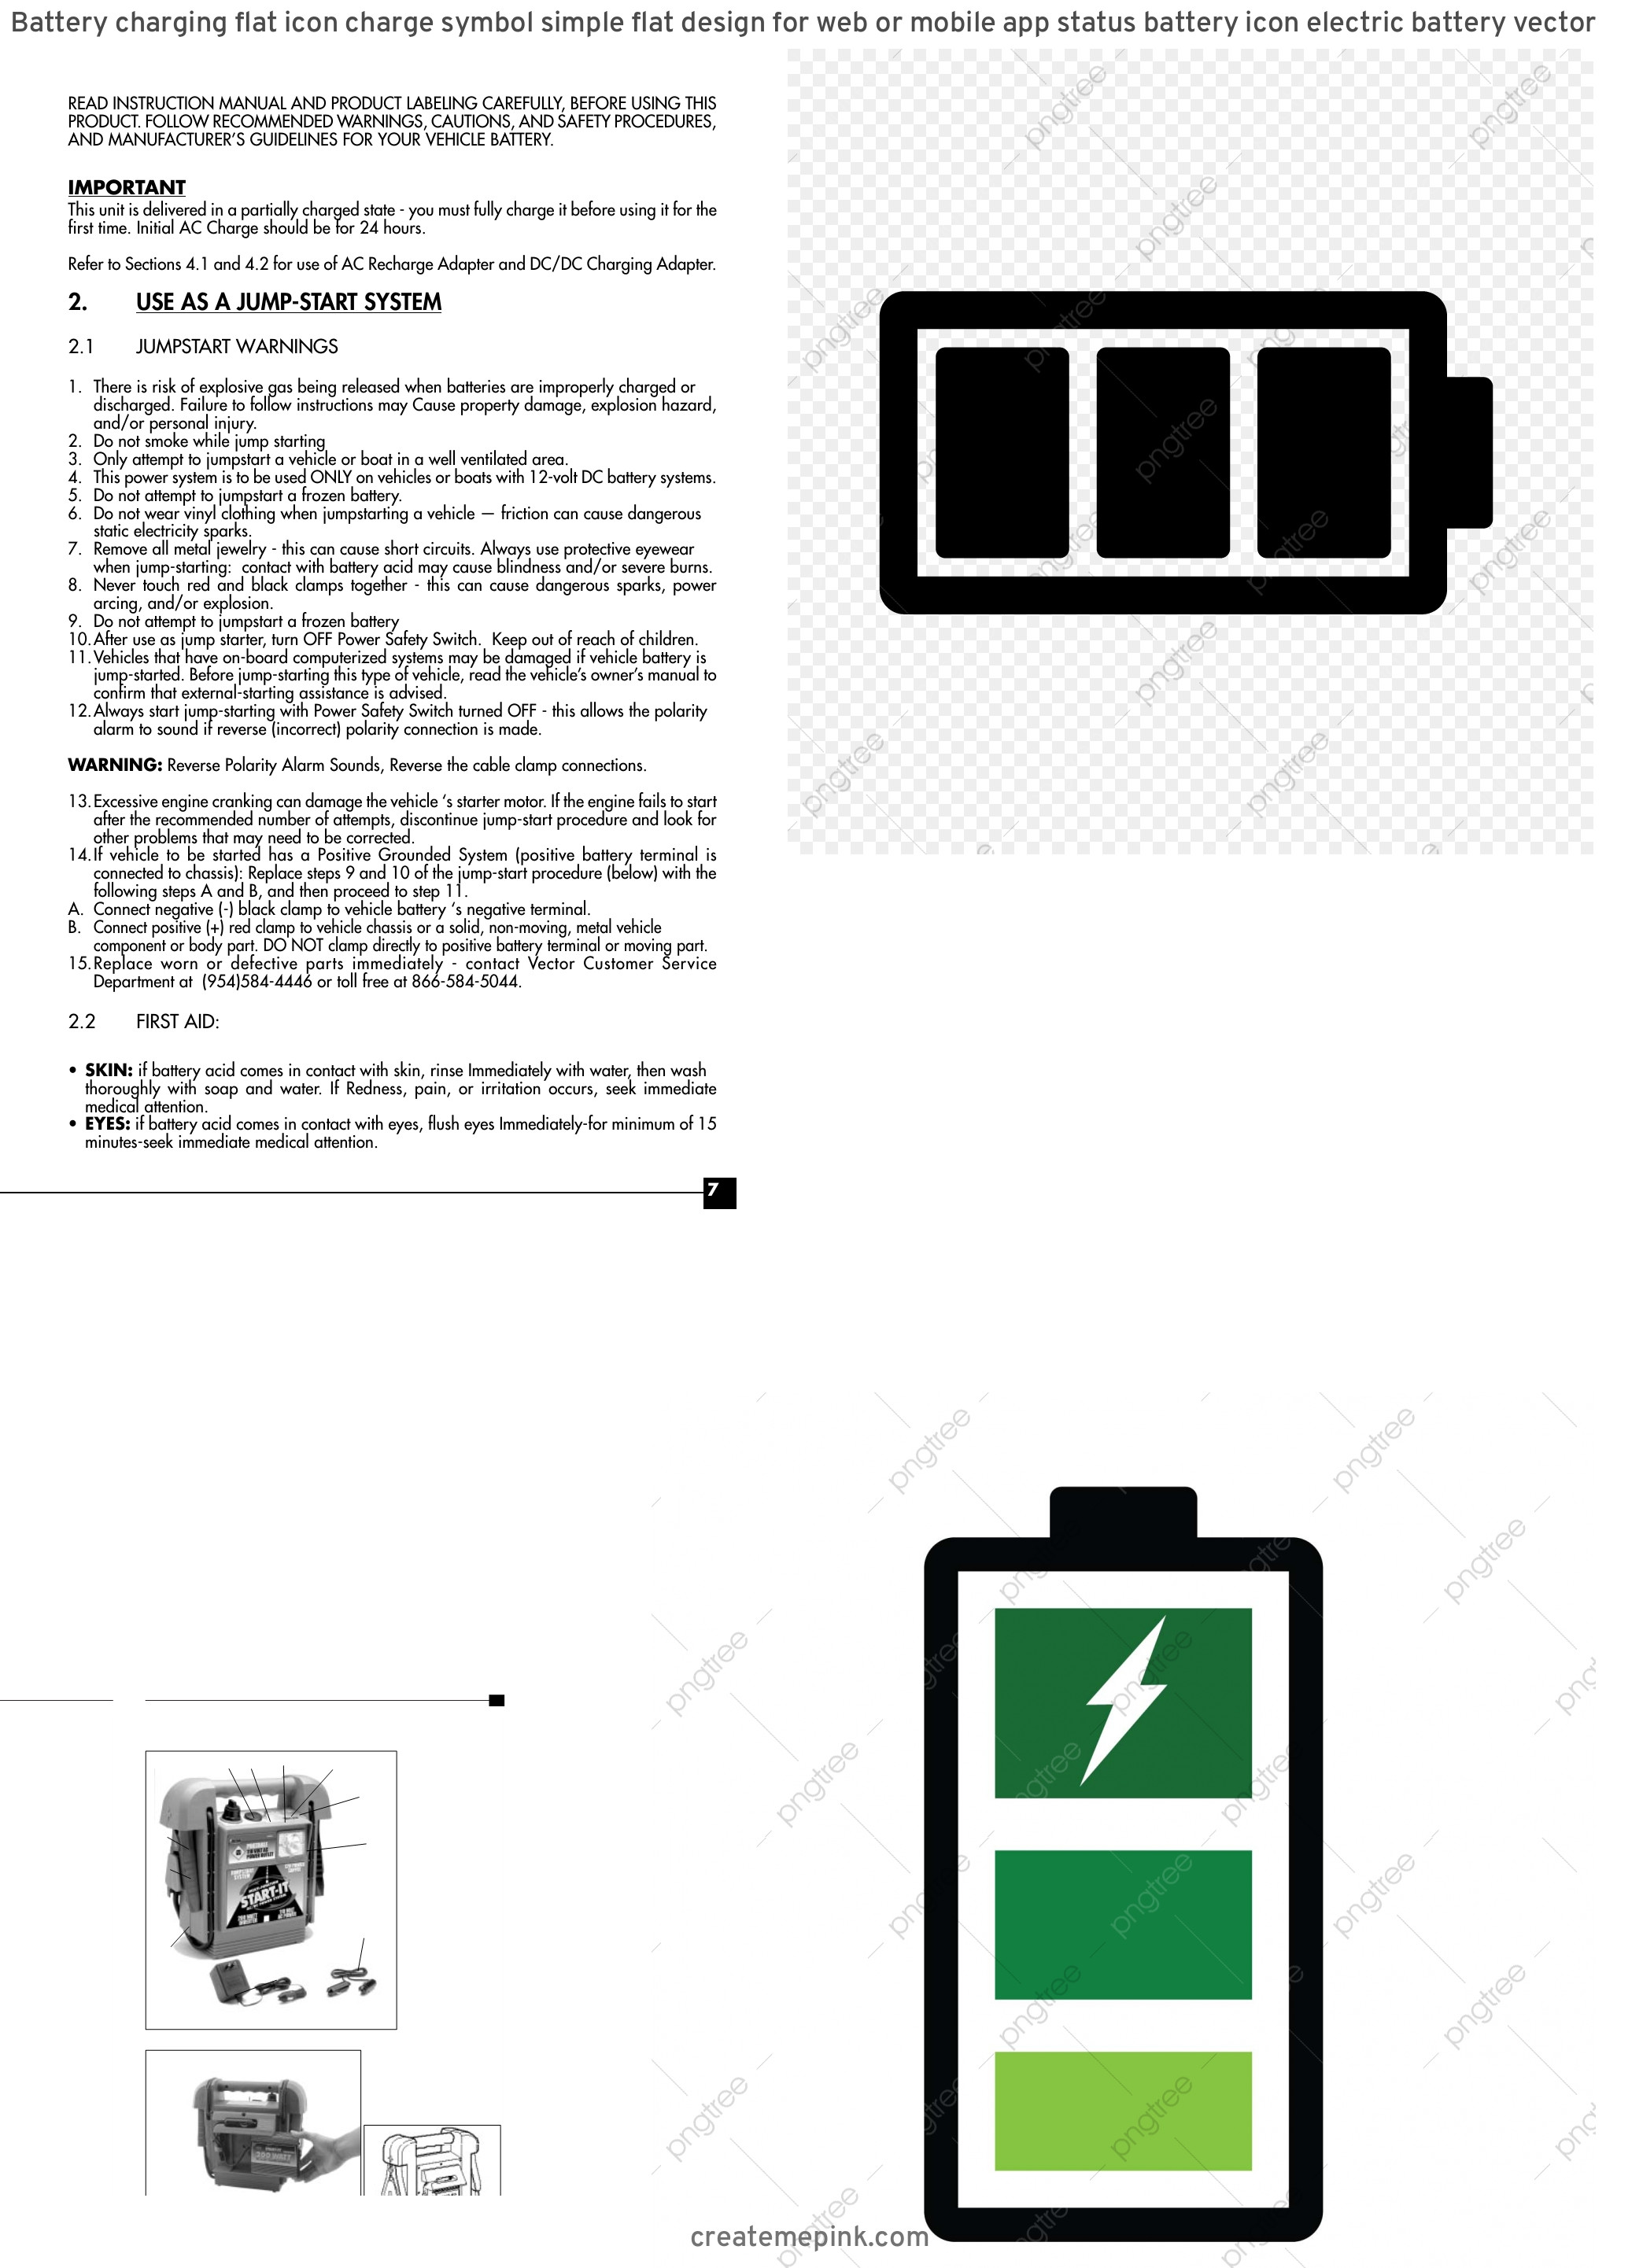 Vector Battery Charger Instruction Manual: Battery Charging Flat Icon Charge Symbol Simple Flat Design For Web Or Mobile App Status Battery Icon Electric Battery Vector